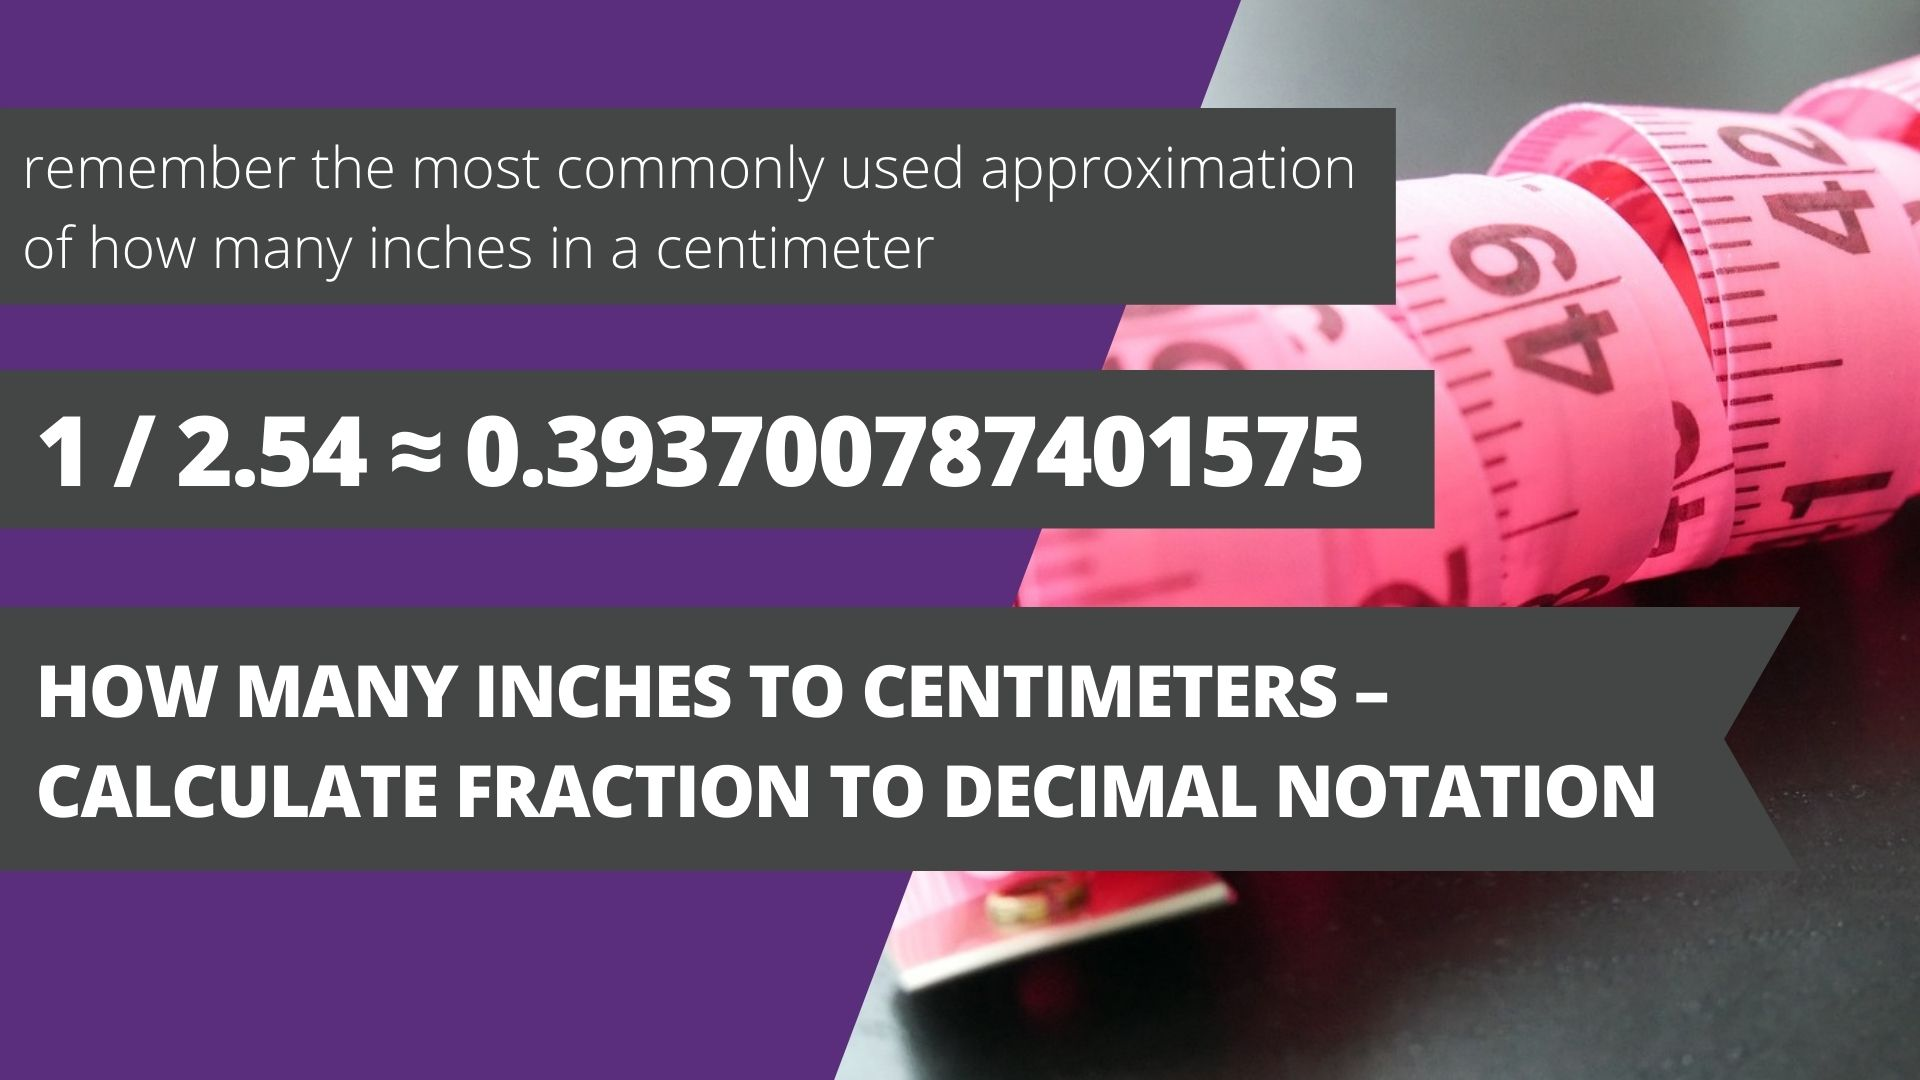 How many inches to centimeters – calculate fraction to decimal notation